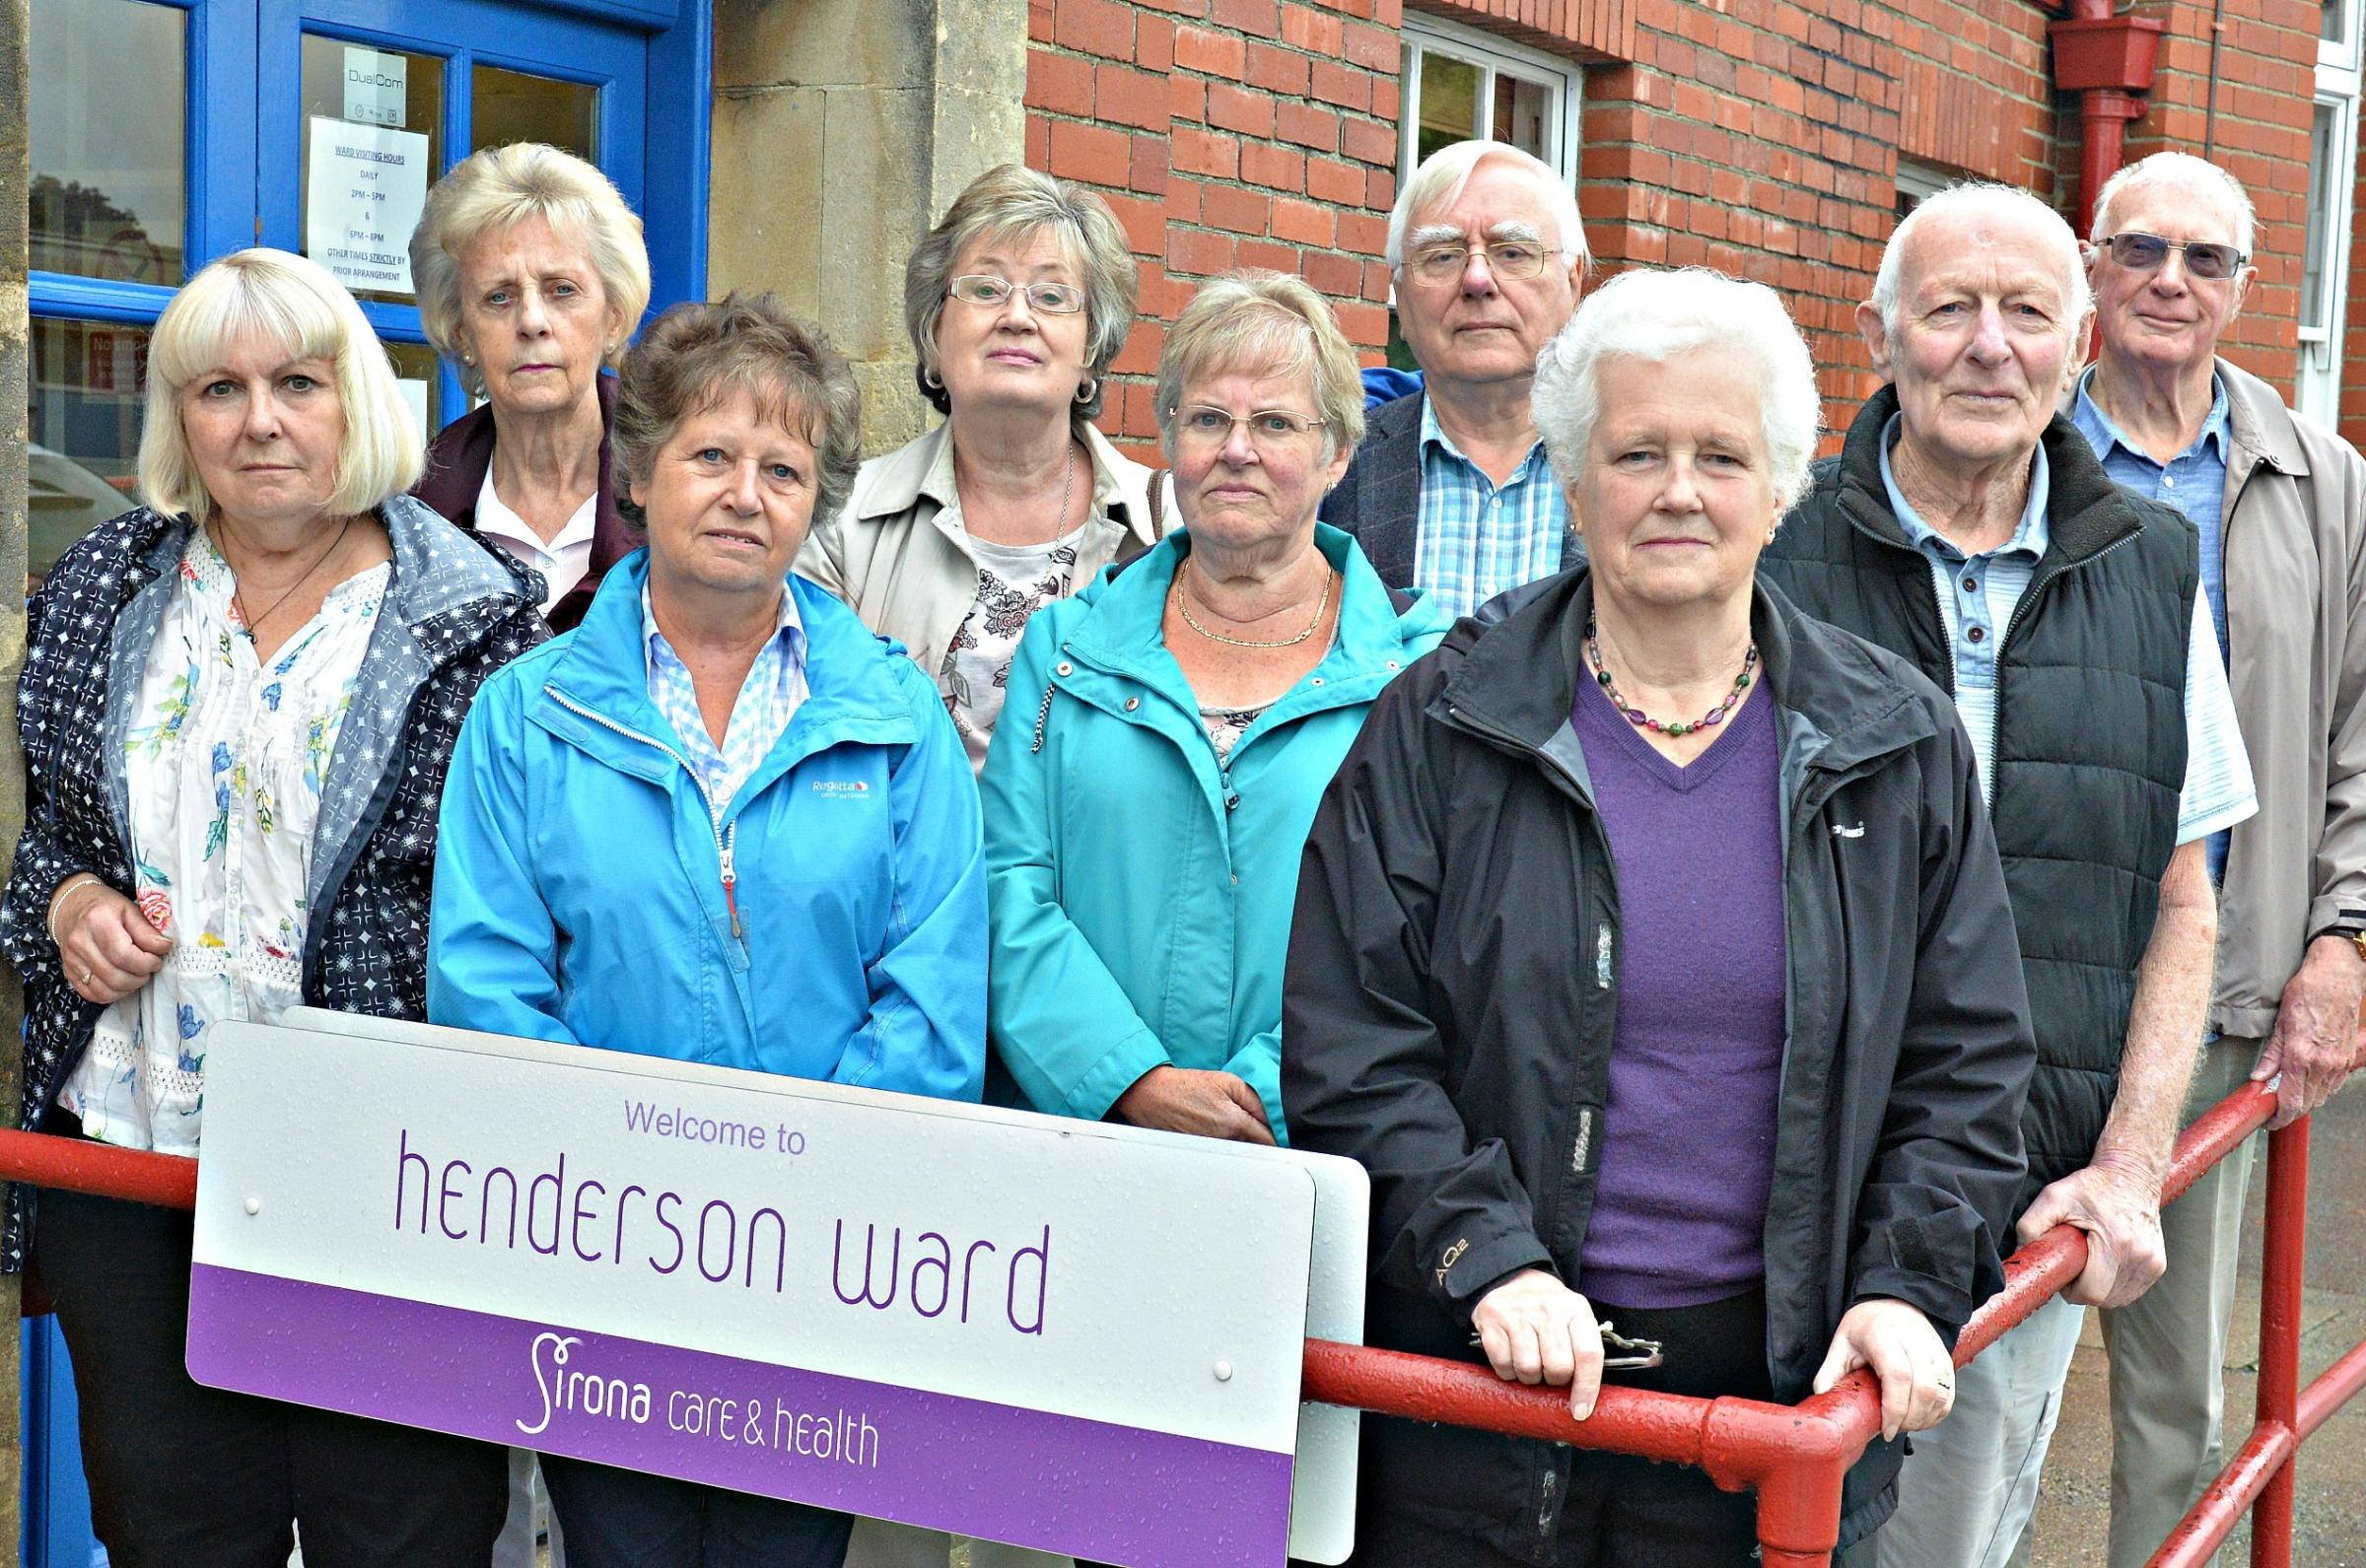 Shirley Holloway, centre, Chairman of Thornbury Hospital League of Friends with other members of the Friends outside Henderson Ward